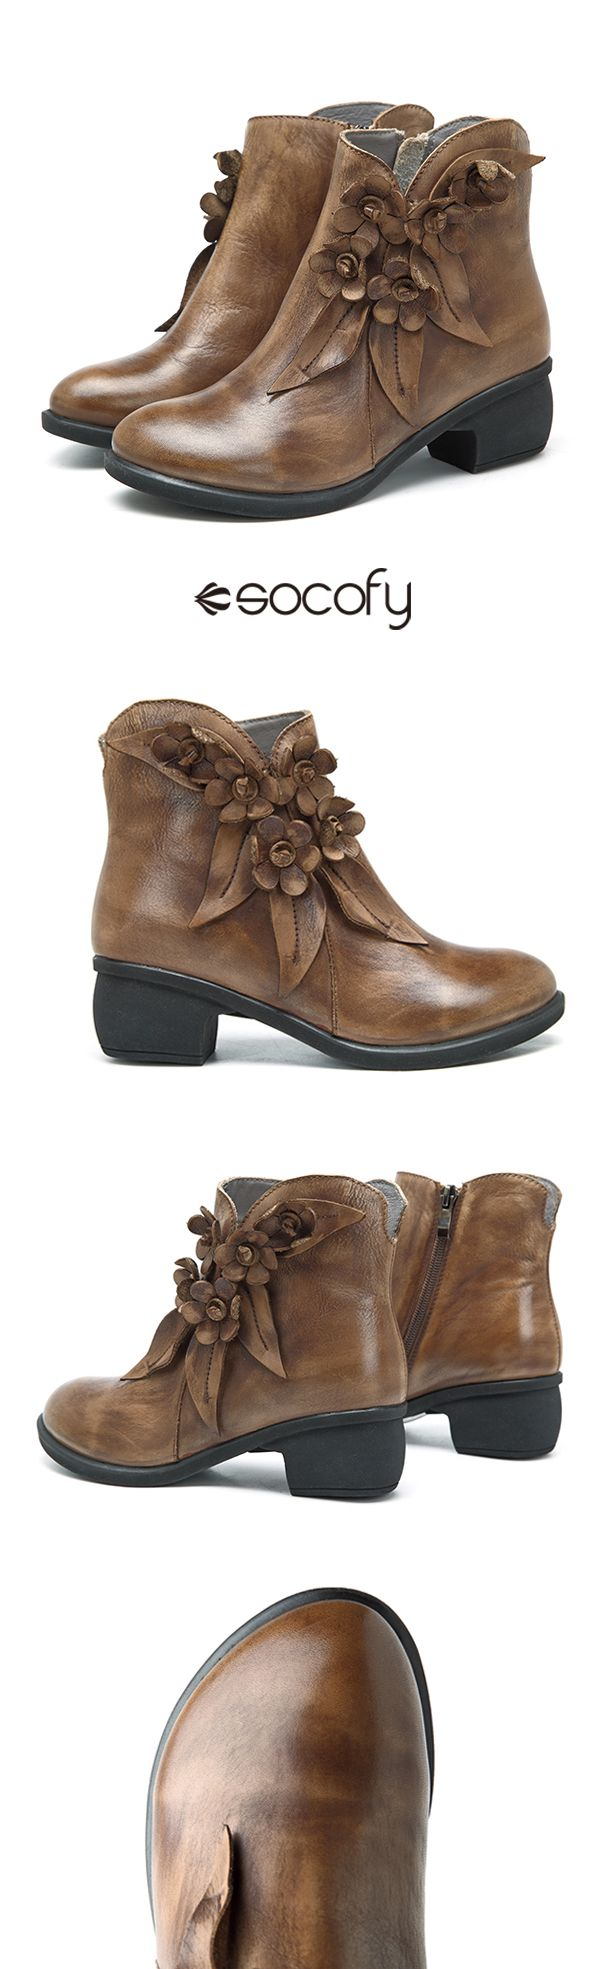 US$54.33   SOCOFY Sooo Comfy Vintage Handmade Floral Ankle Leather Boots